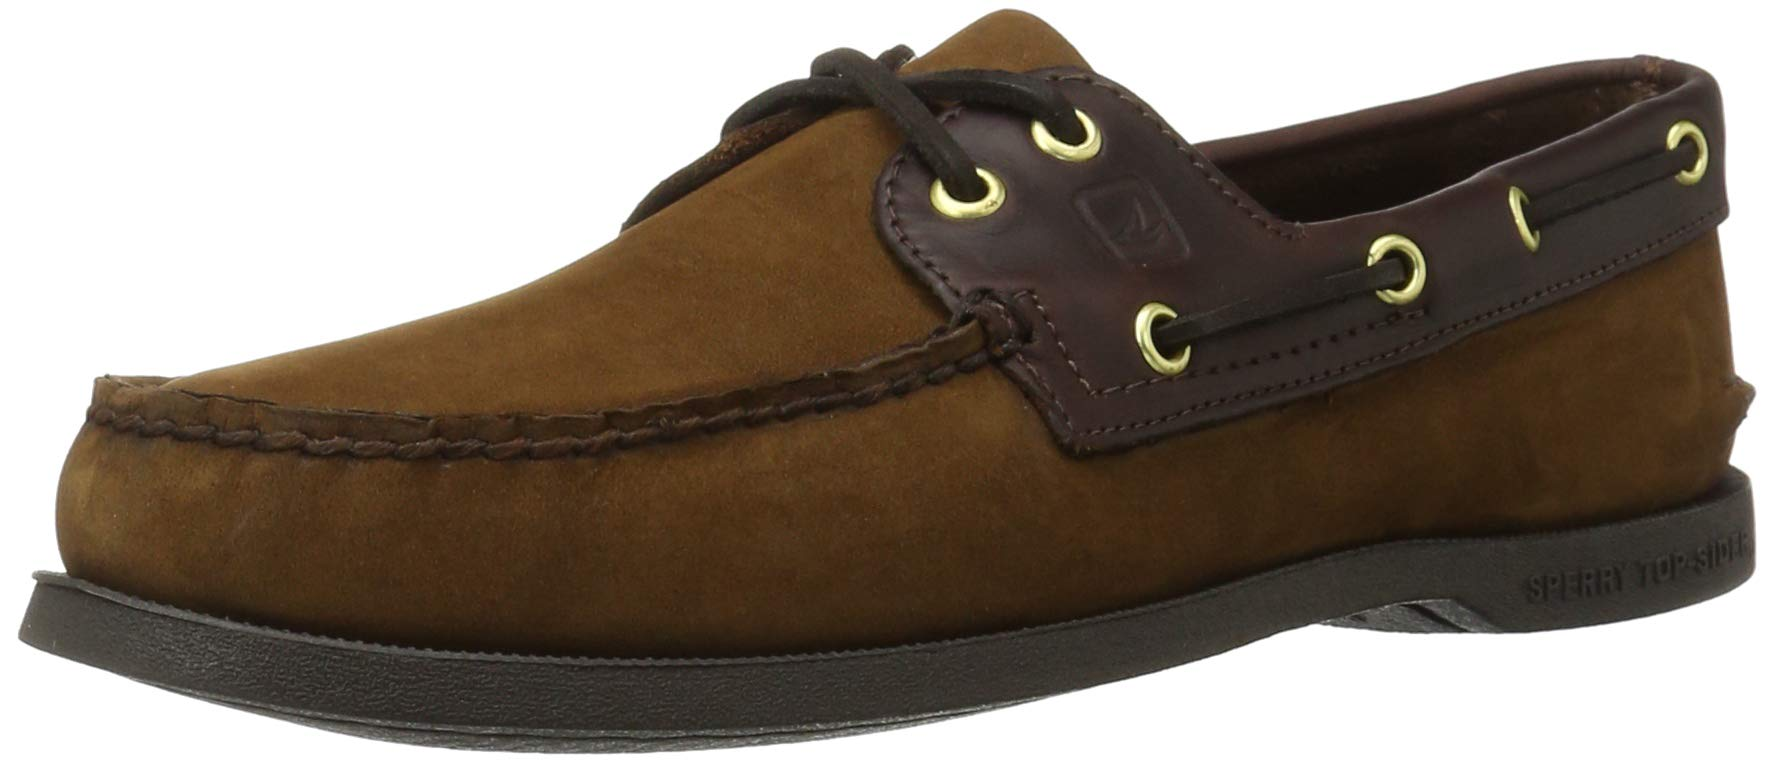 Sperry Top-Sider Men's A/O 2 Eye Boat Shoe,Brown/Buck Brown,10.5 M US